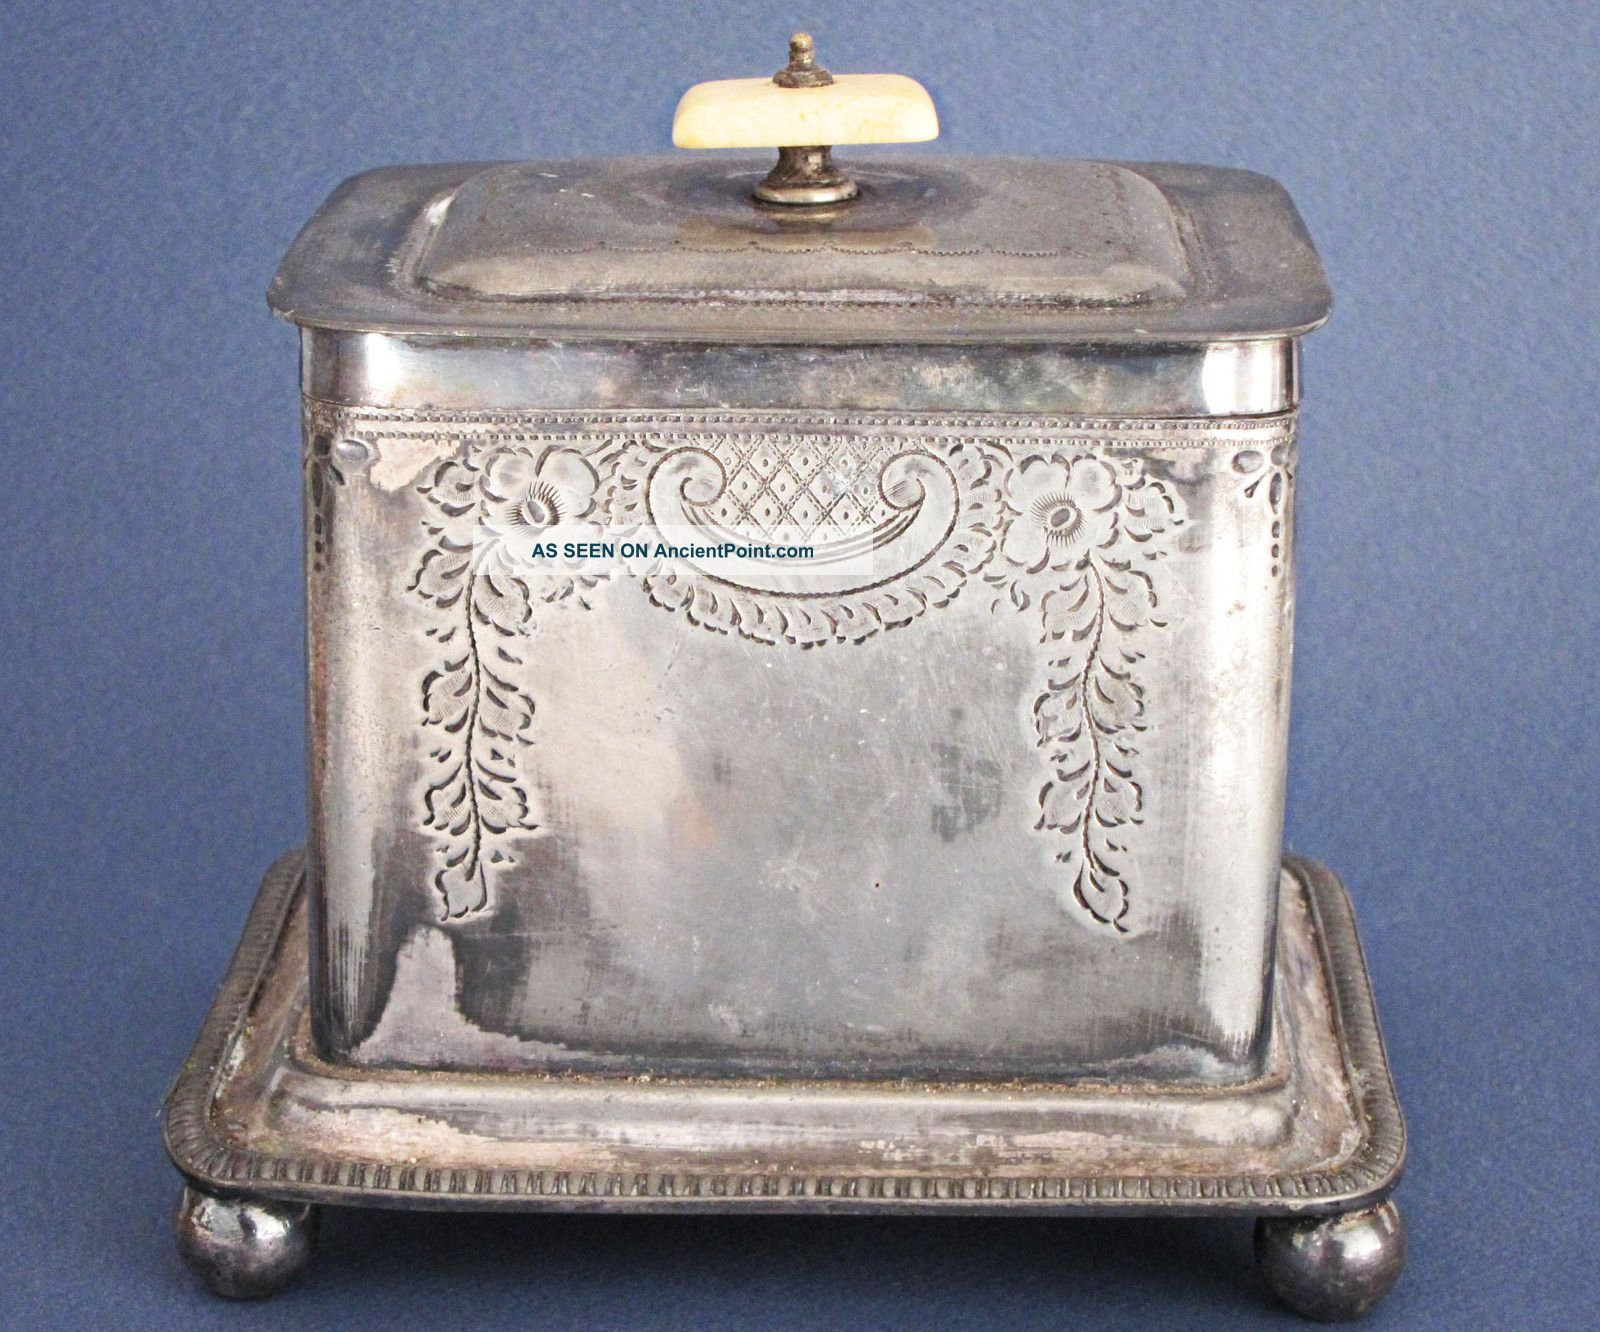 Antiques Active Antique Silverplate Woven Small Vanity Basket Made In Germany Other Antique Decorative Arts